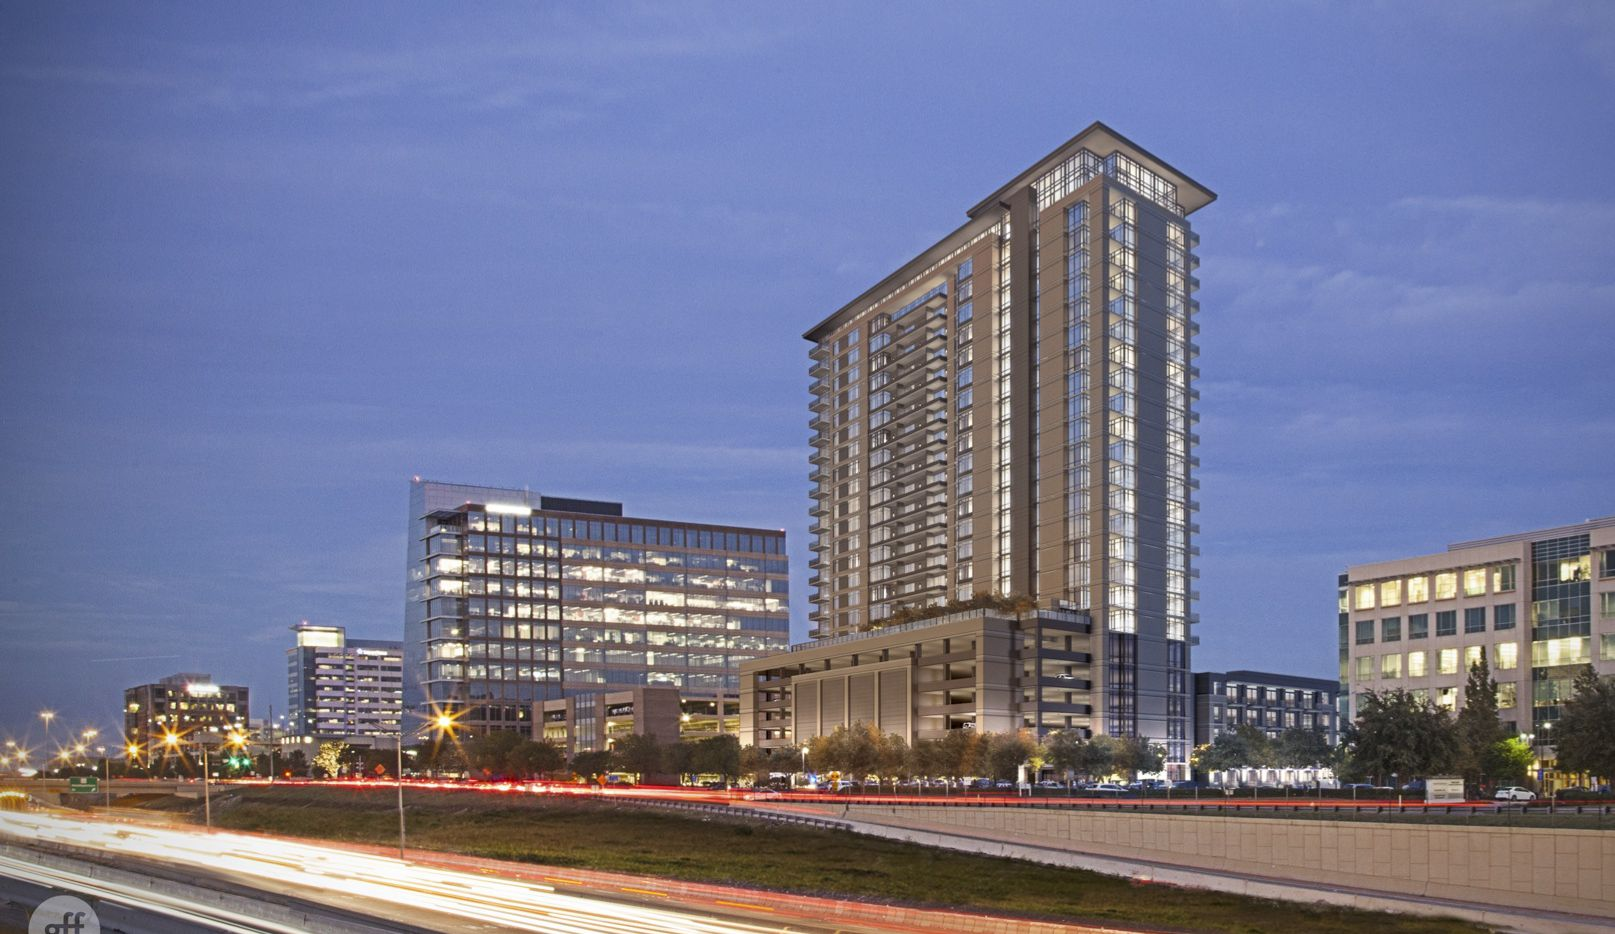 High Street Residential and Principal Real Estate are starting construction this month on the 25-story Plano tower.